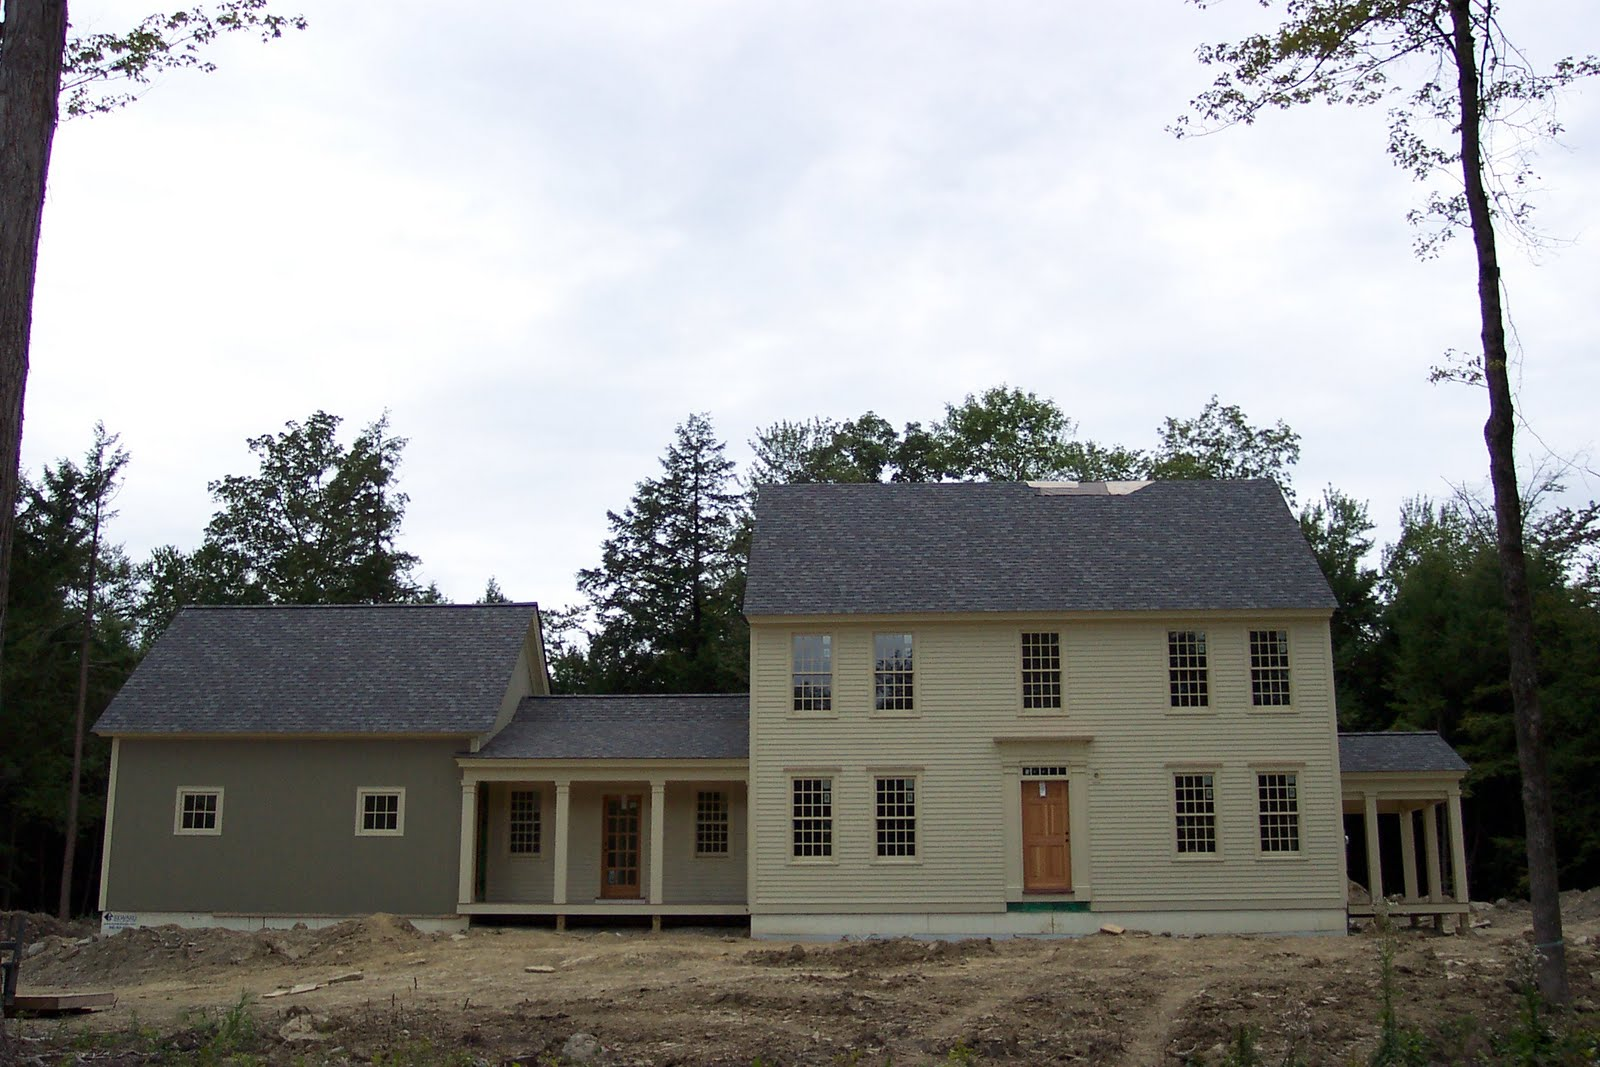 Our New Old House: September 2010